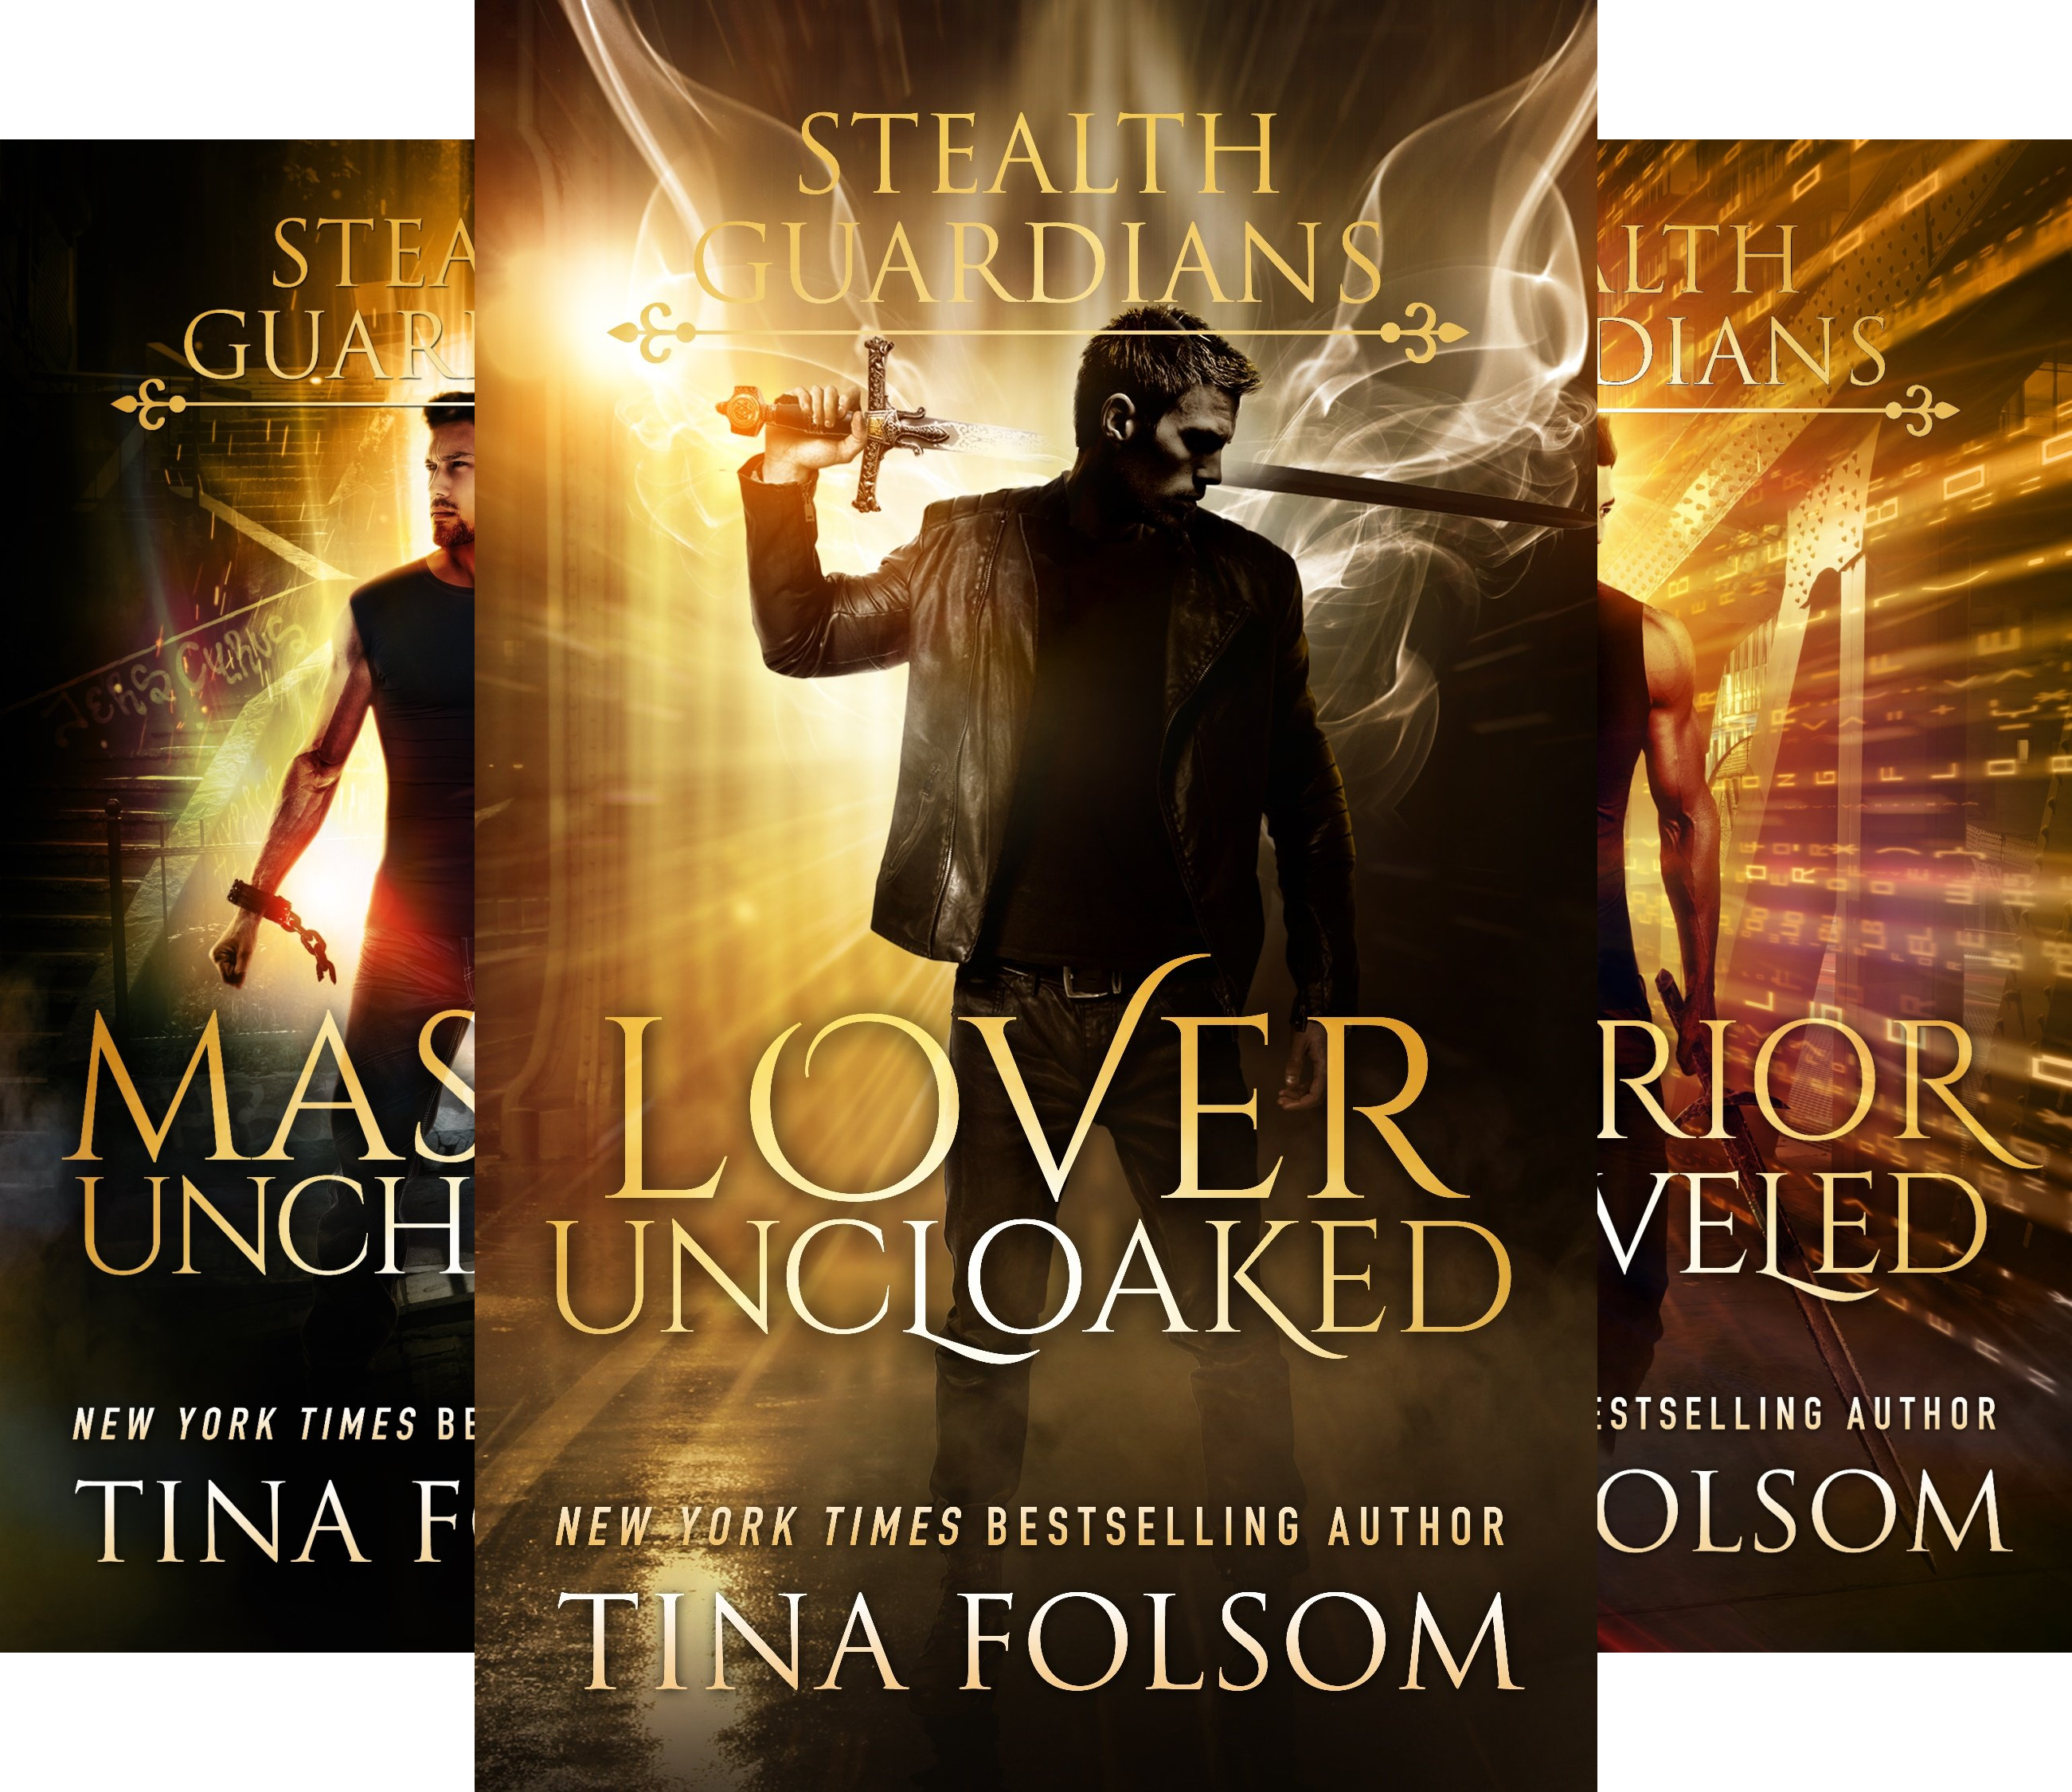 Stealth Guardians (4 Book Series)